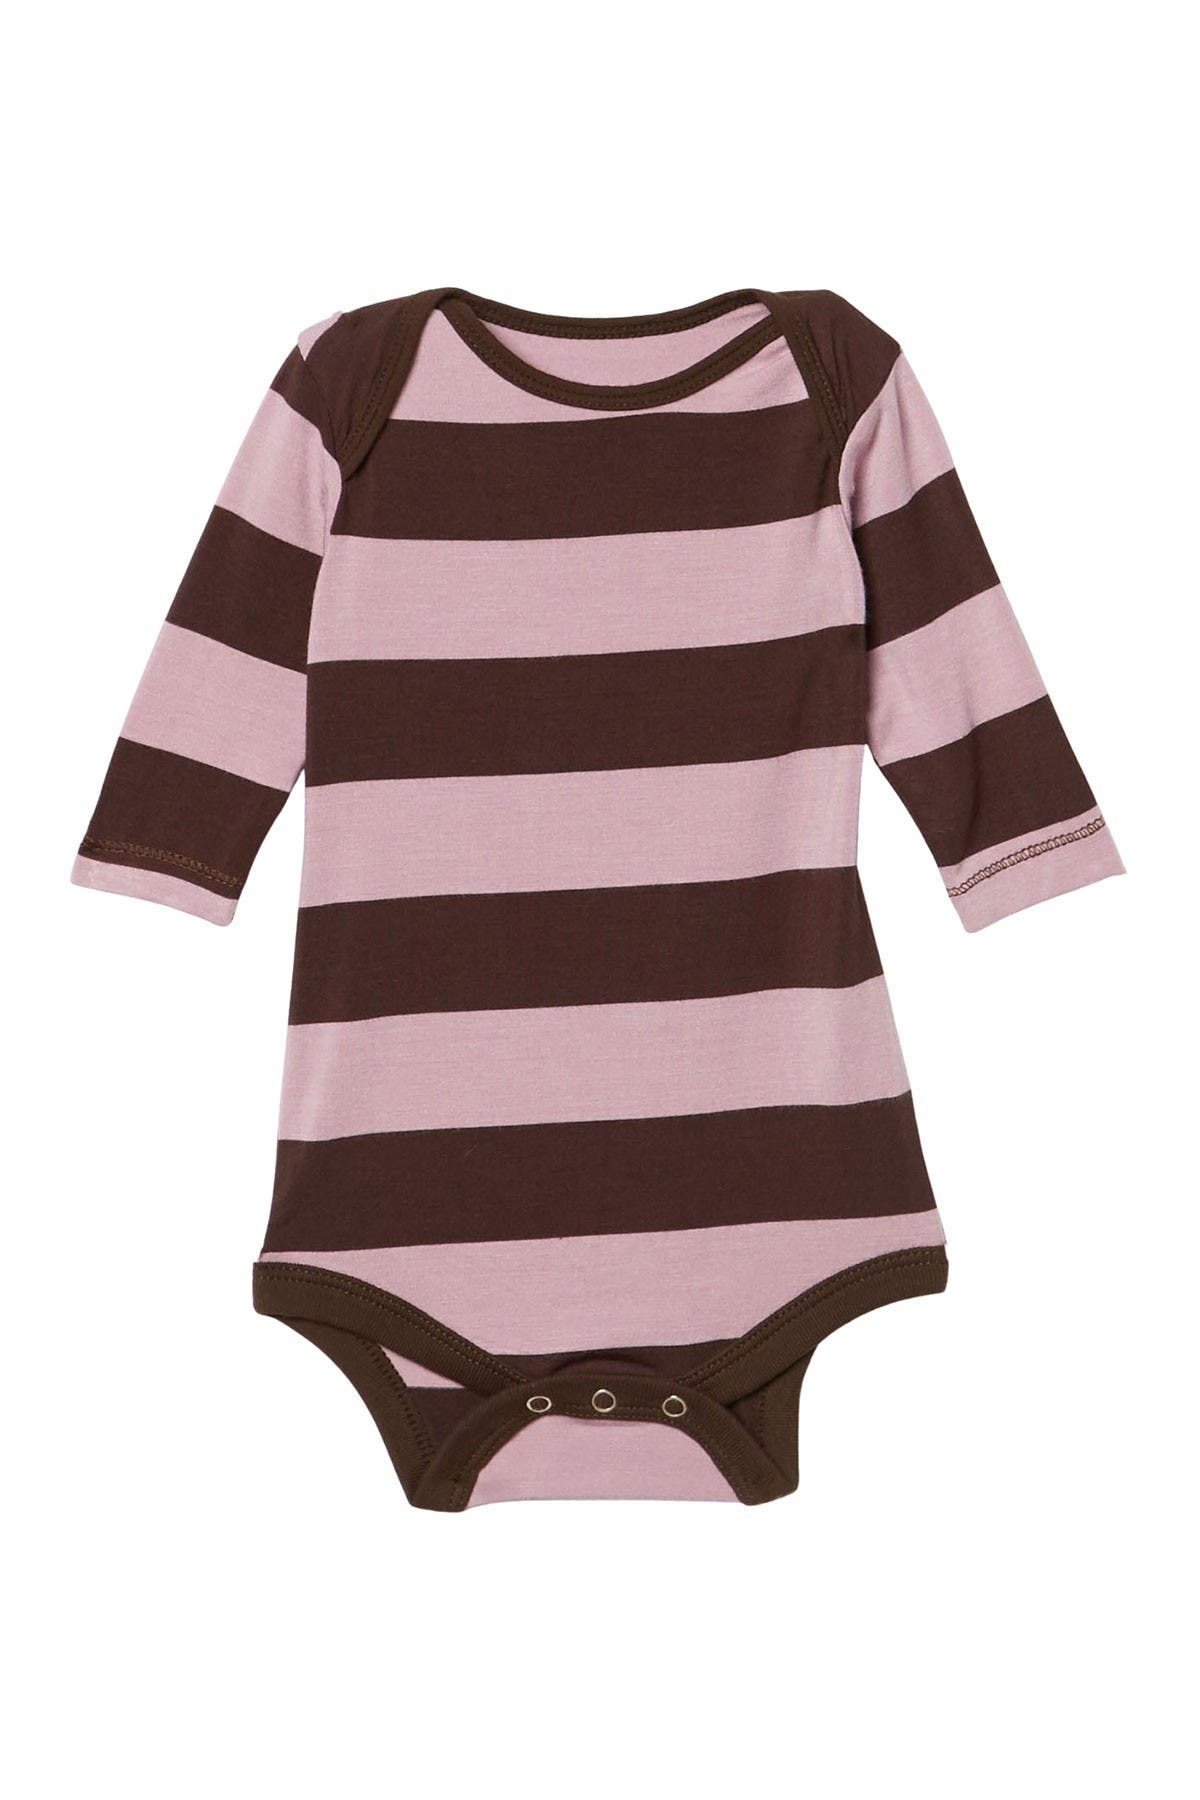 Image of KicKee Pants Striped One-Piece Bodysuit